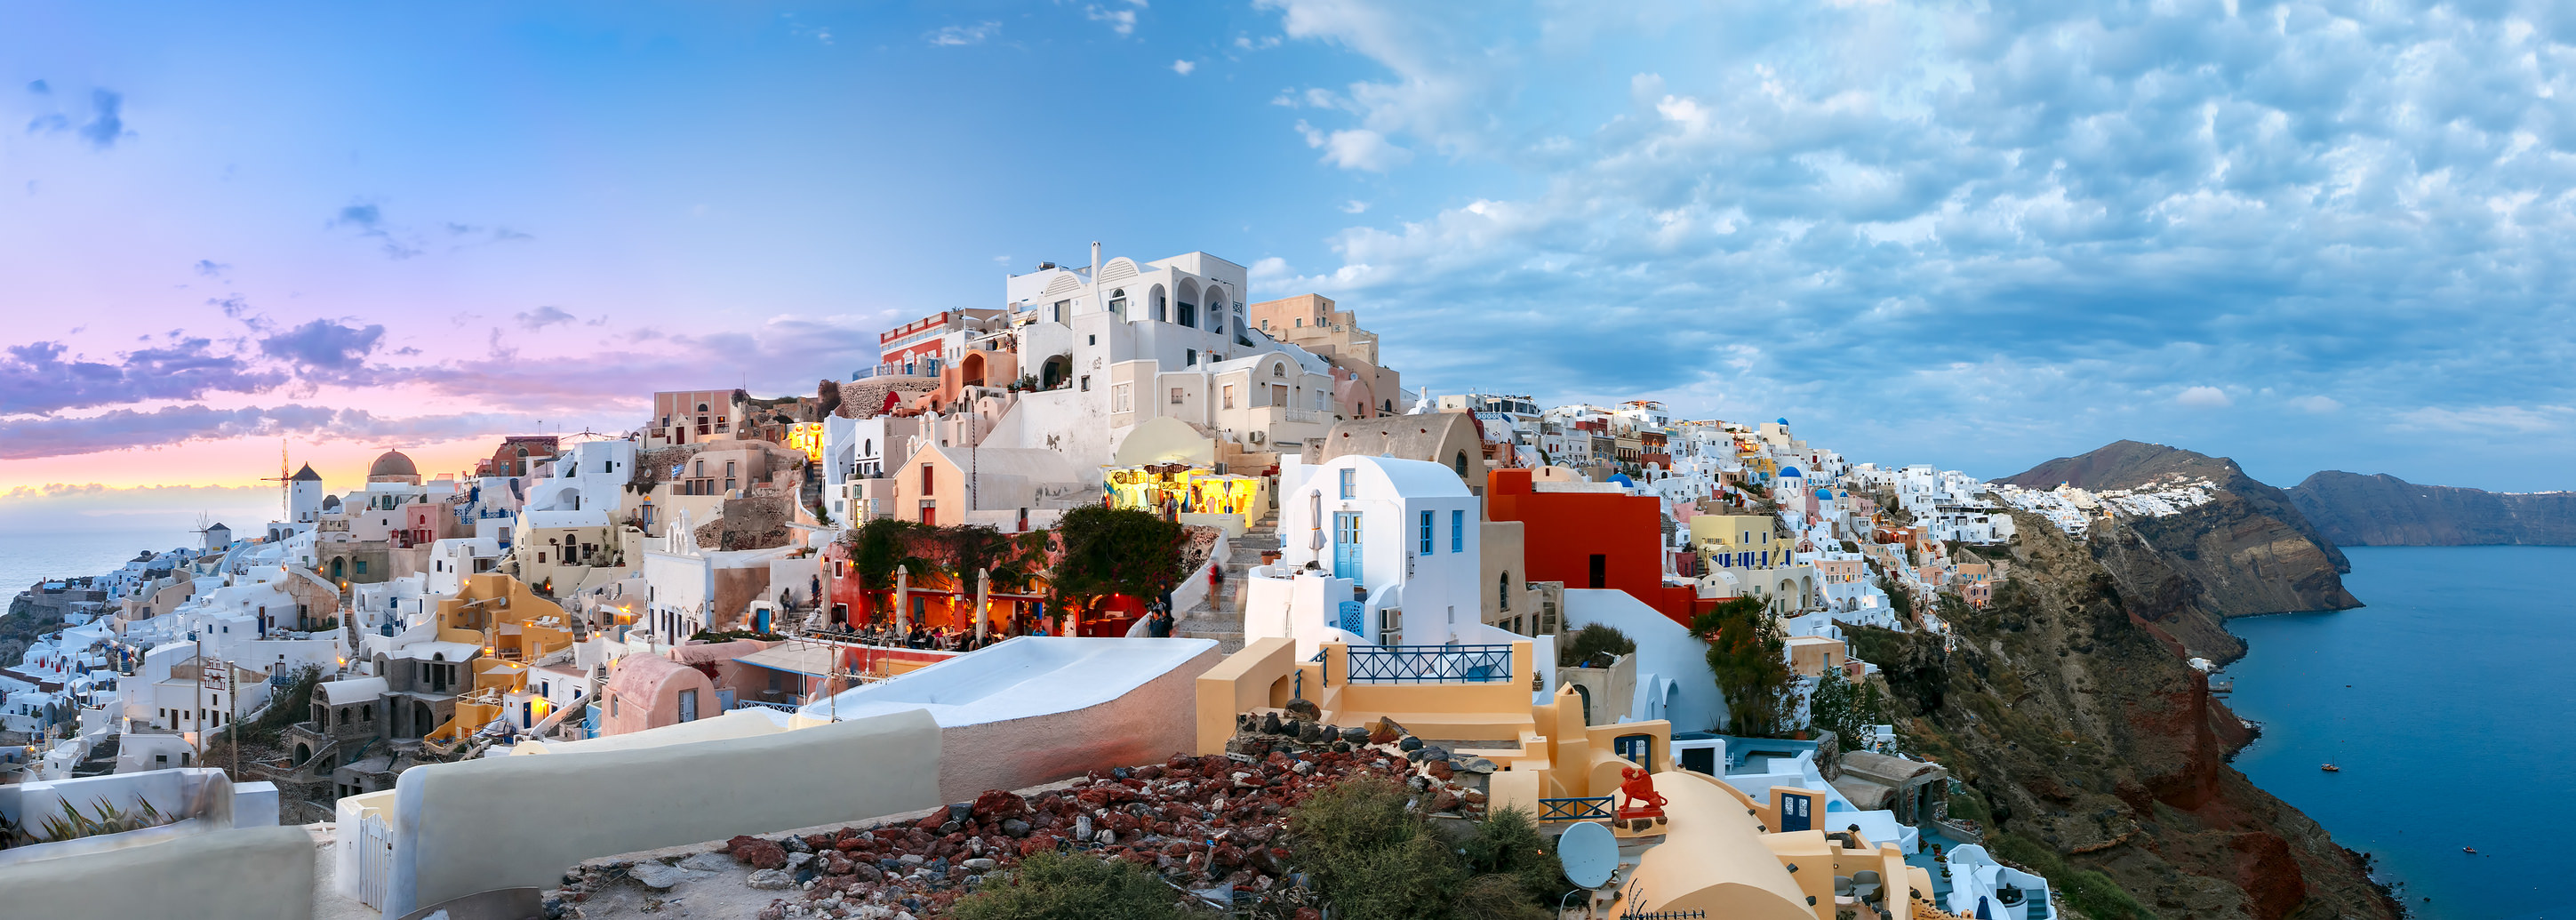 What to Do on Oia's Main Street in Santorini